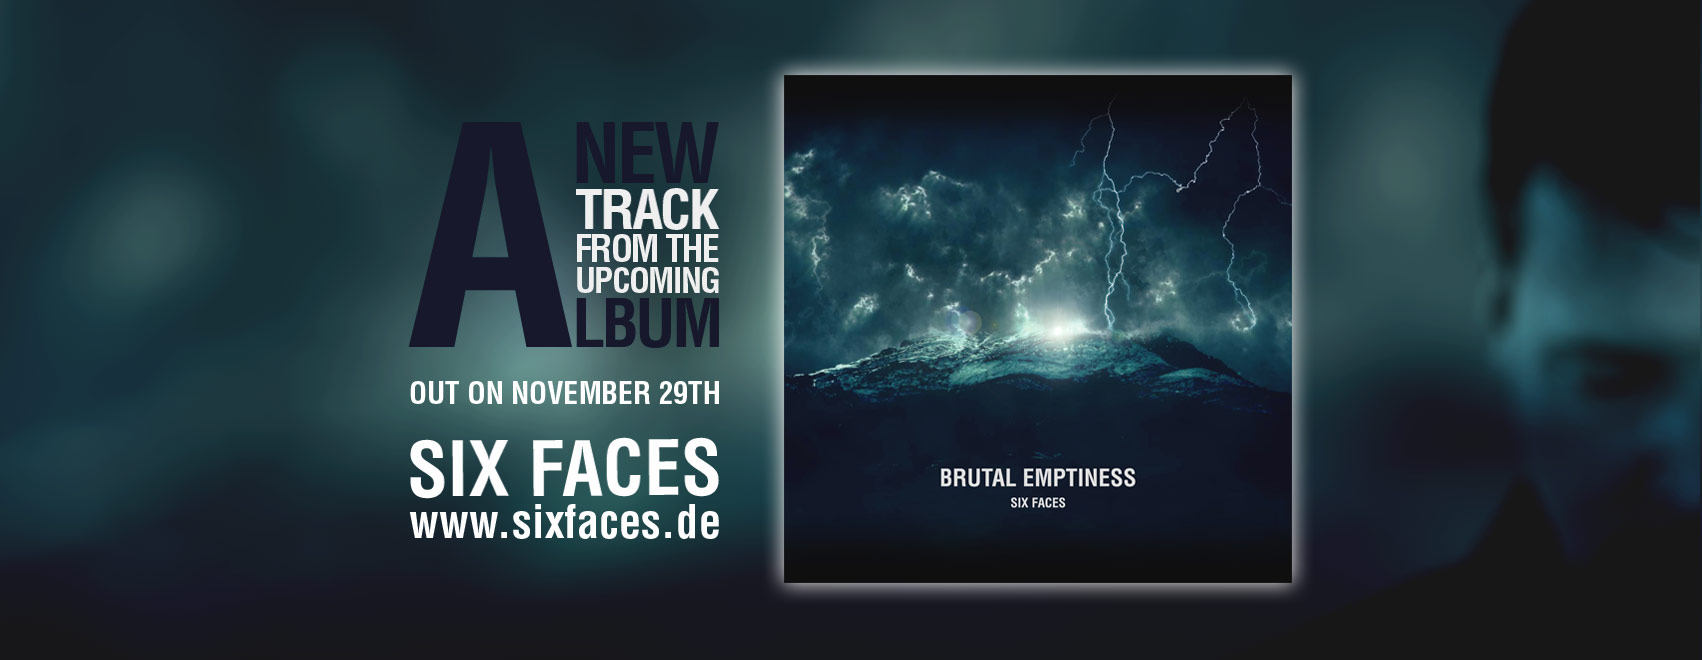 Six Faces - Brutal Emptiness